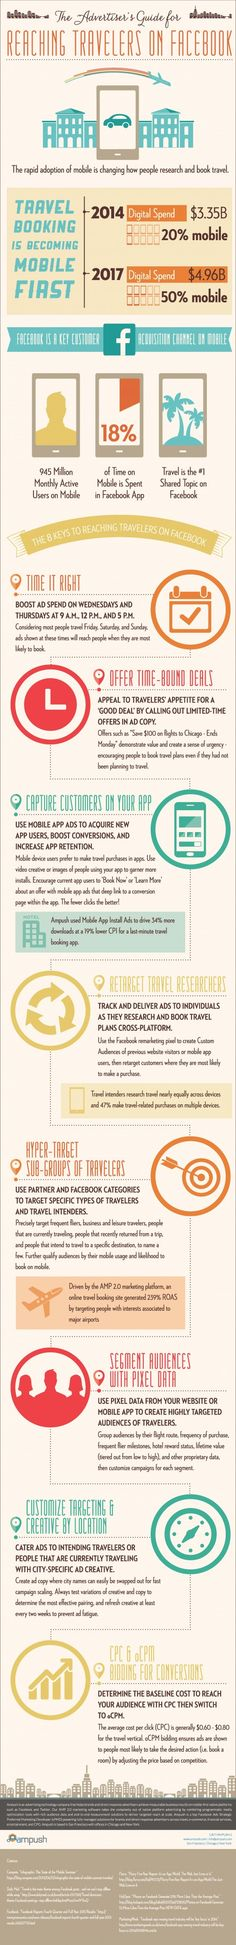 How to reach travelers on Facebook - a surprisingly insightful and actionable infographic. Would these tactics engage you when you're on the road?